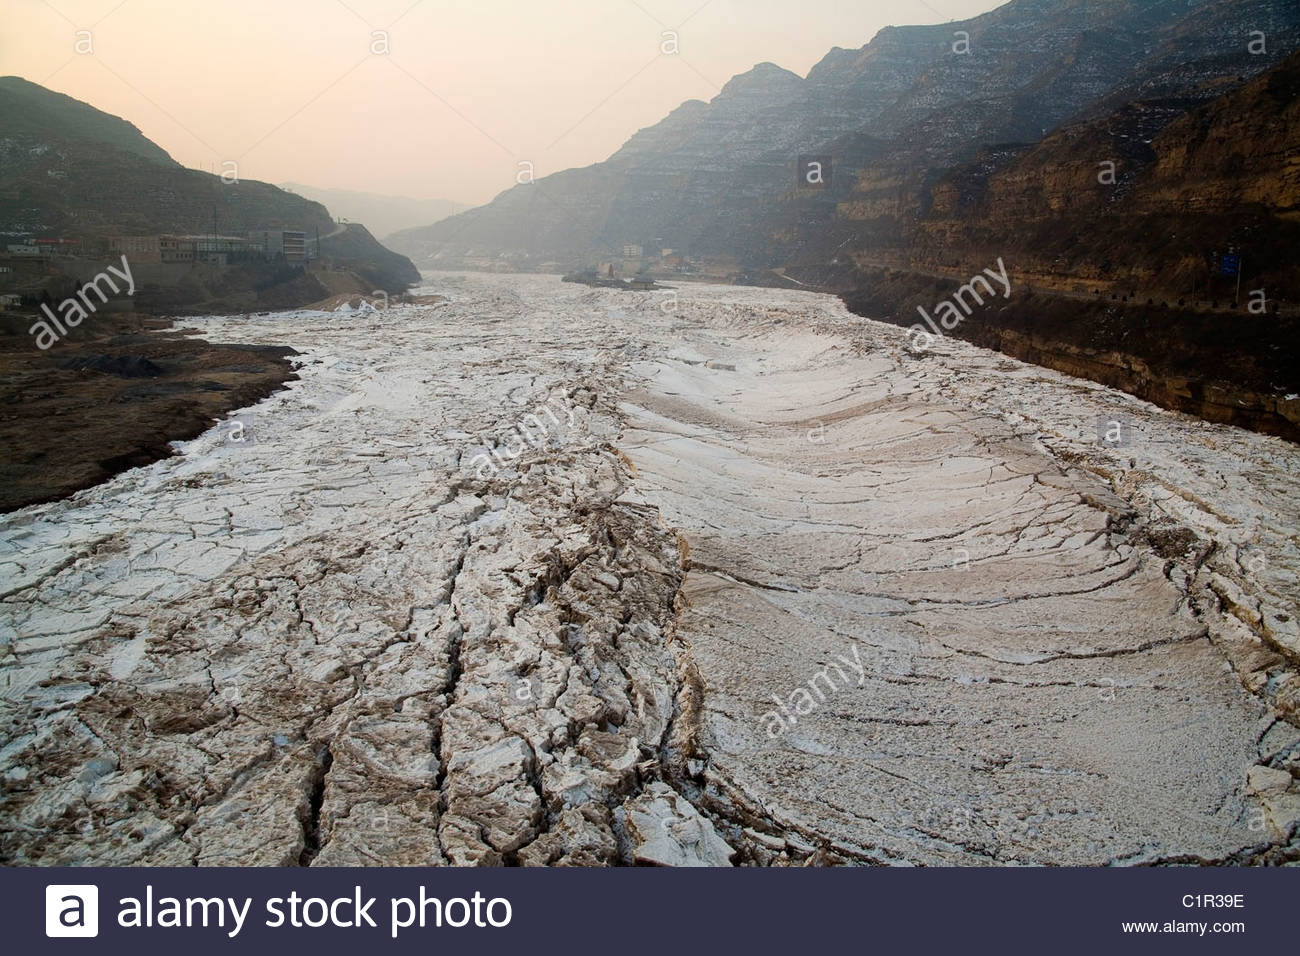 Yellow River, Huang He, dried riverbed, Shaanxi Province, China - Stock Image